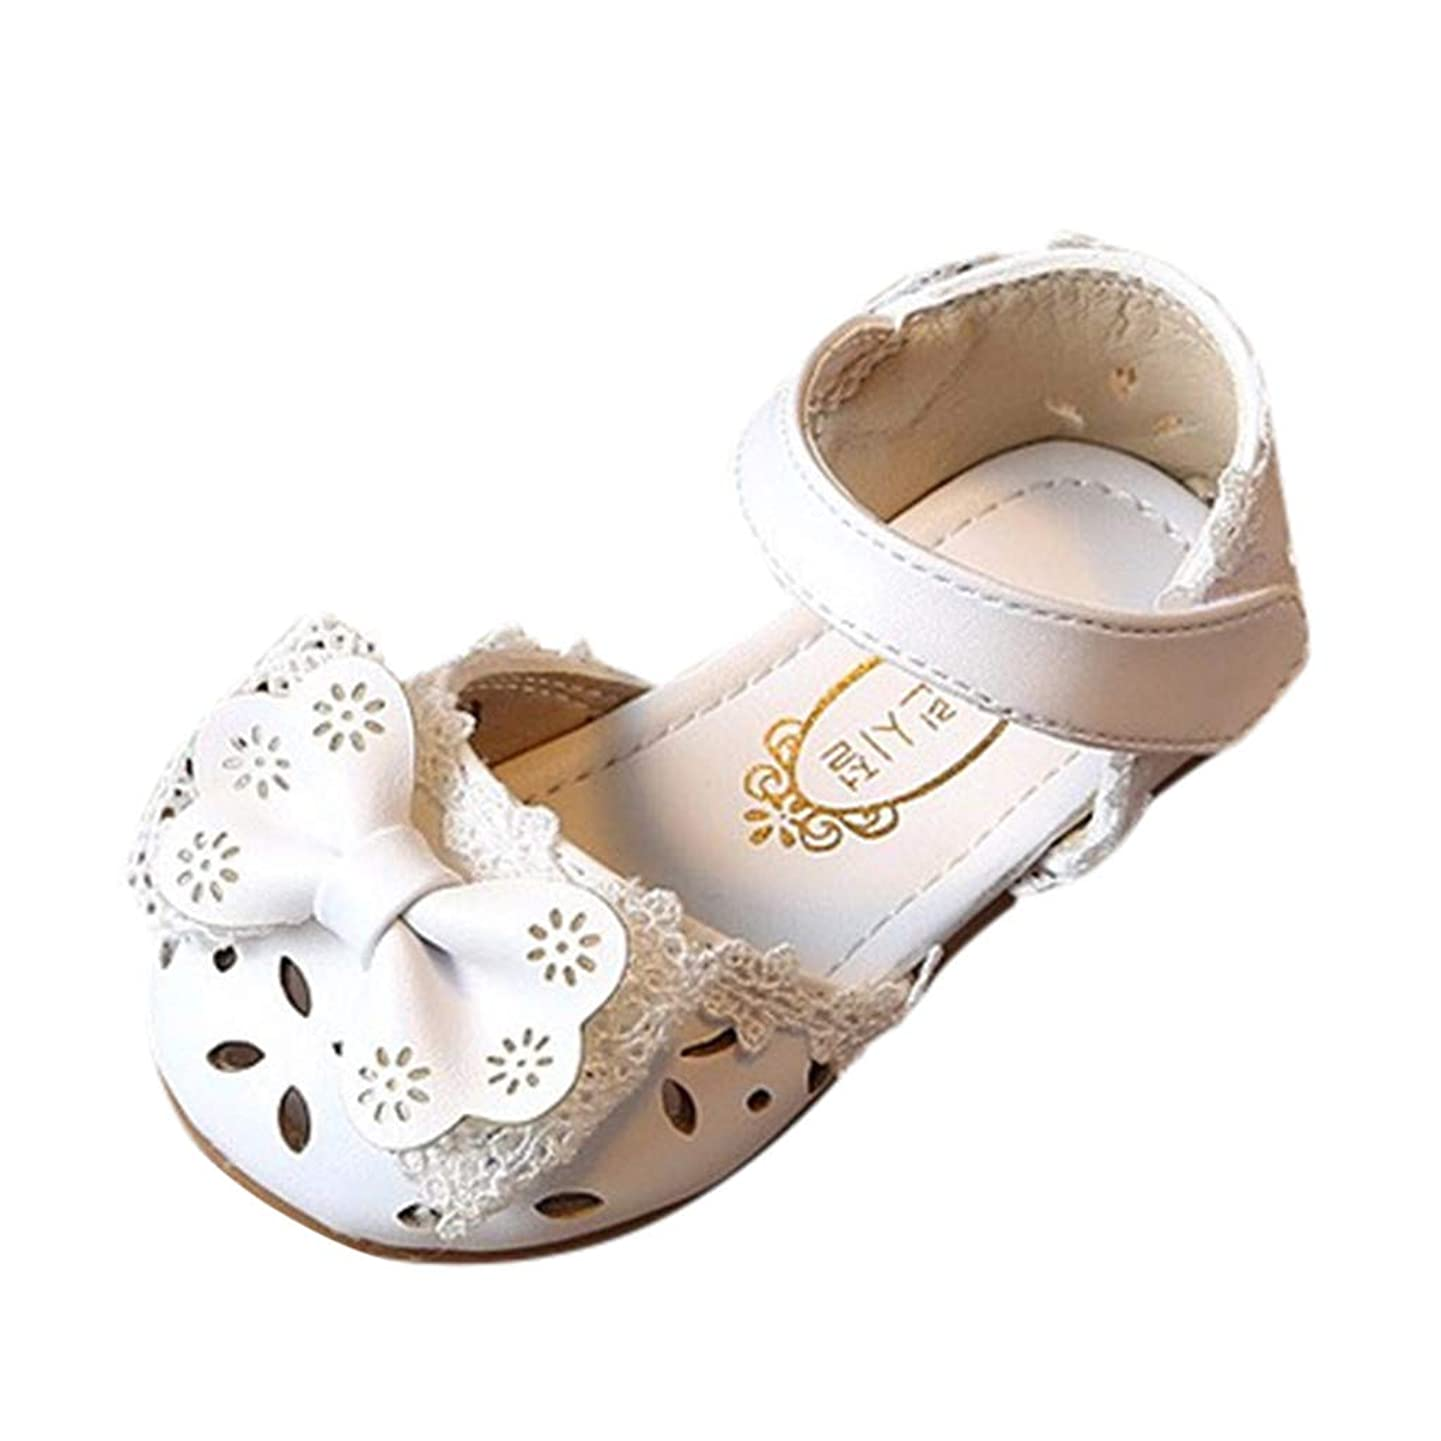 Infant Baby Girls Leather Sandals Rubber Soft Sole Summer Sweet Princess Dress Bowknot Walker Shoes Slippers